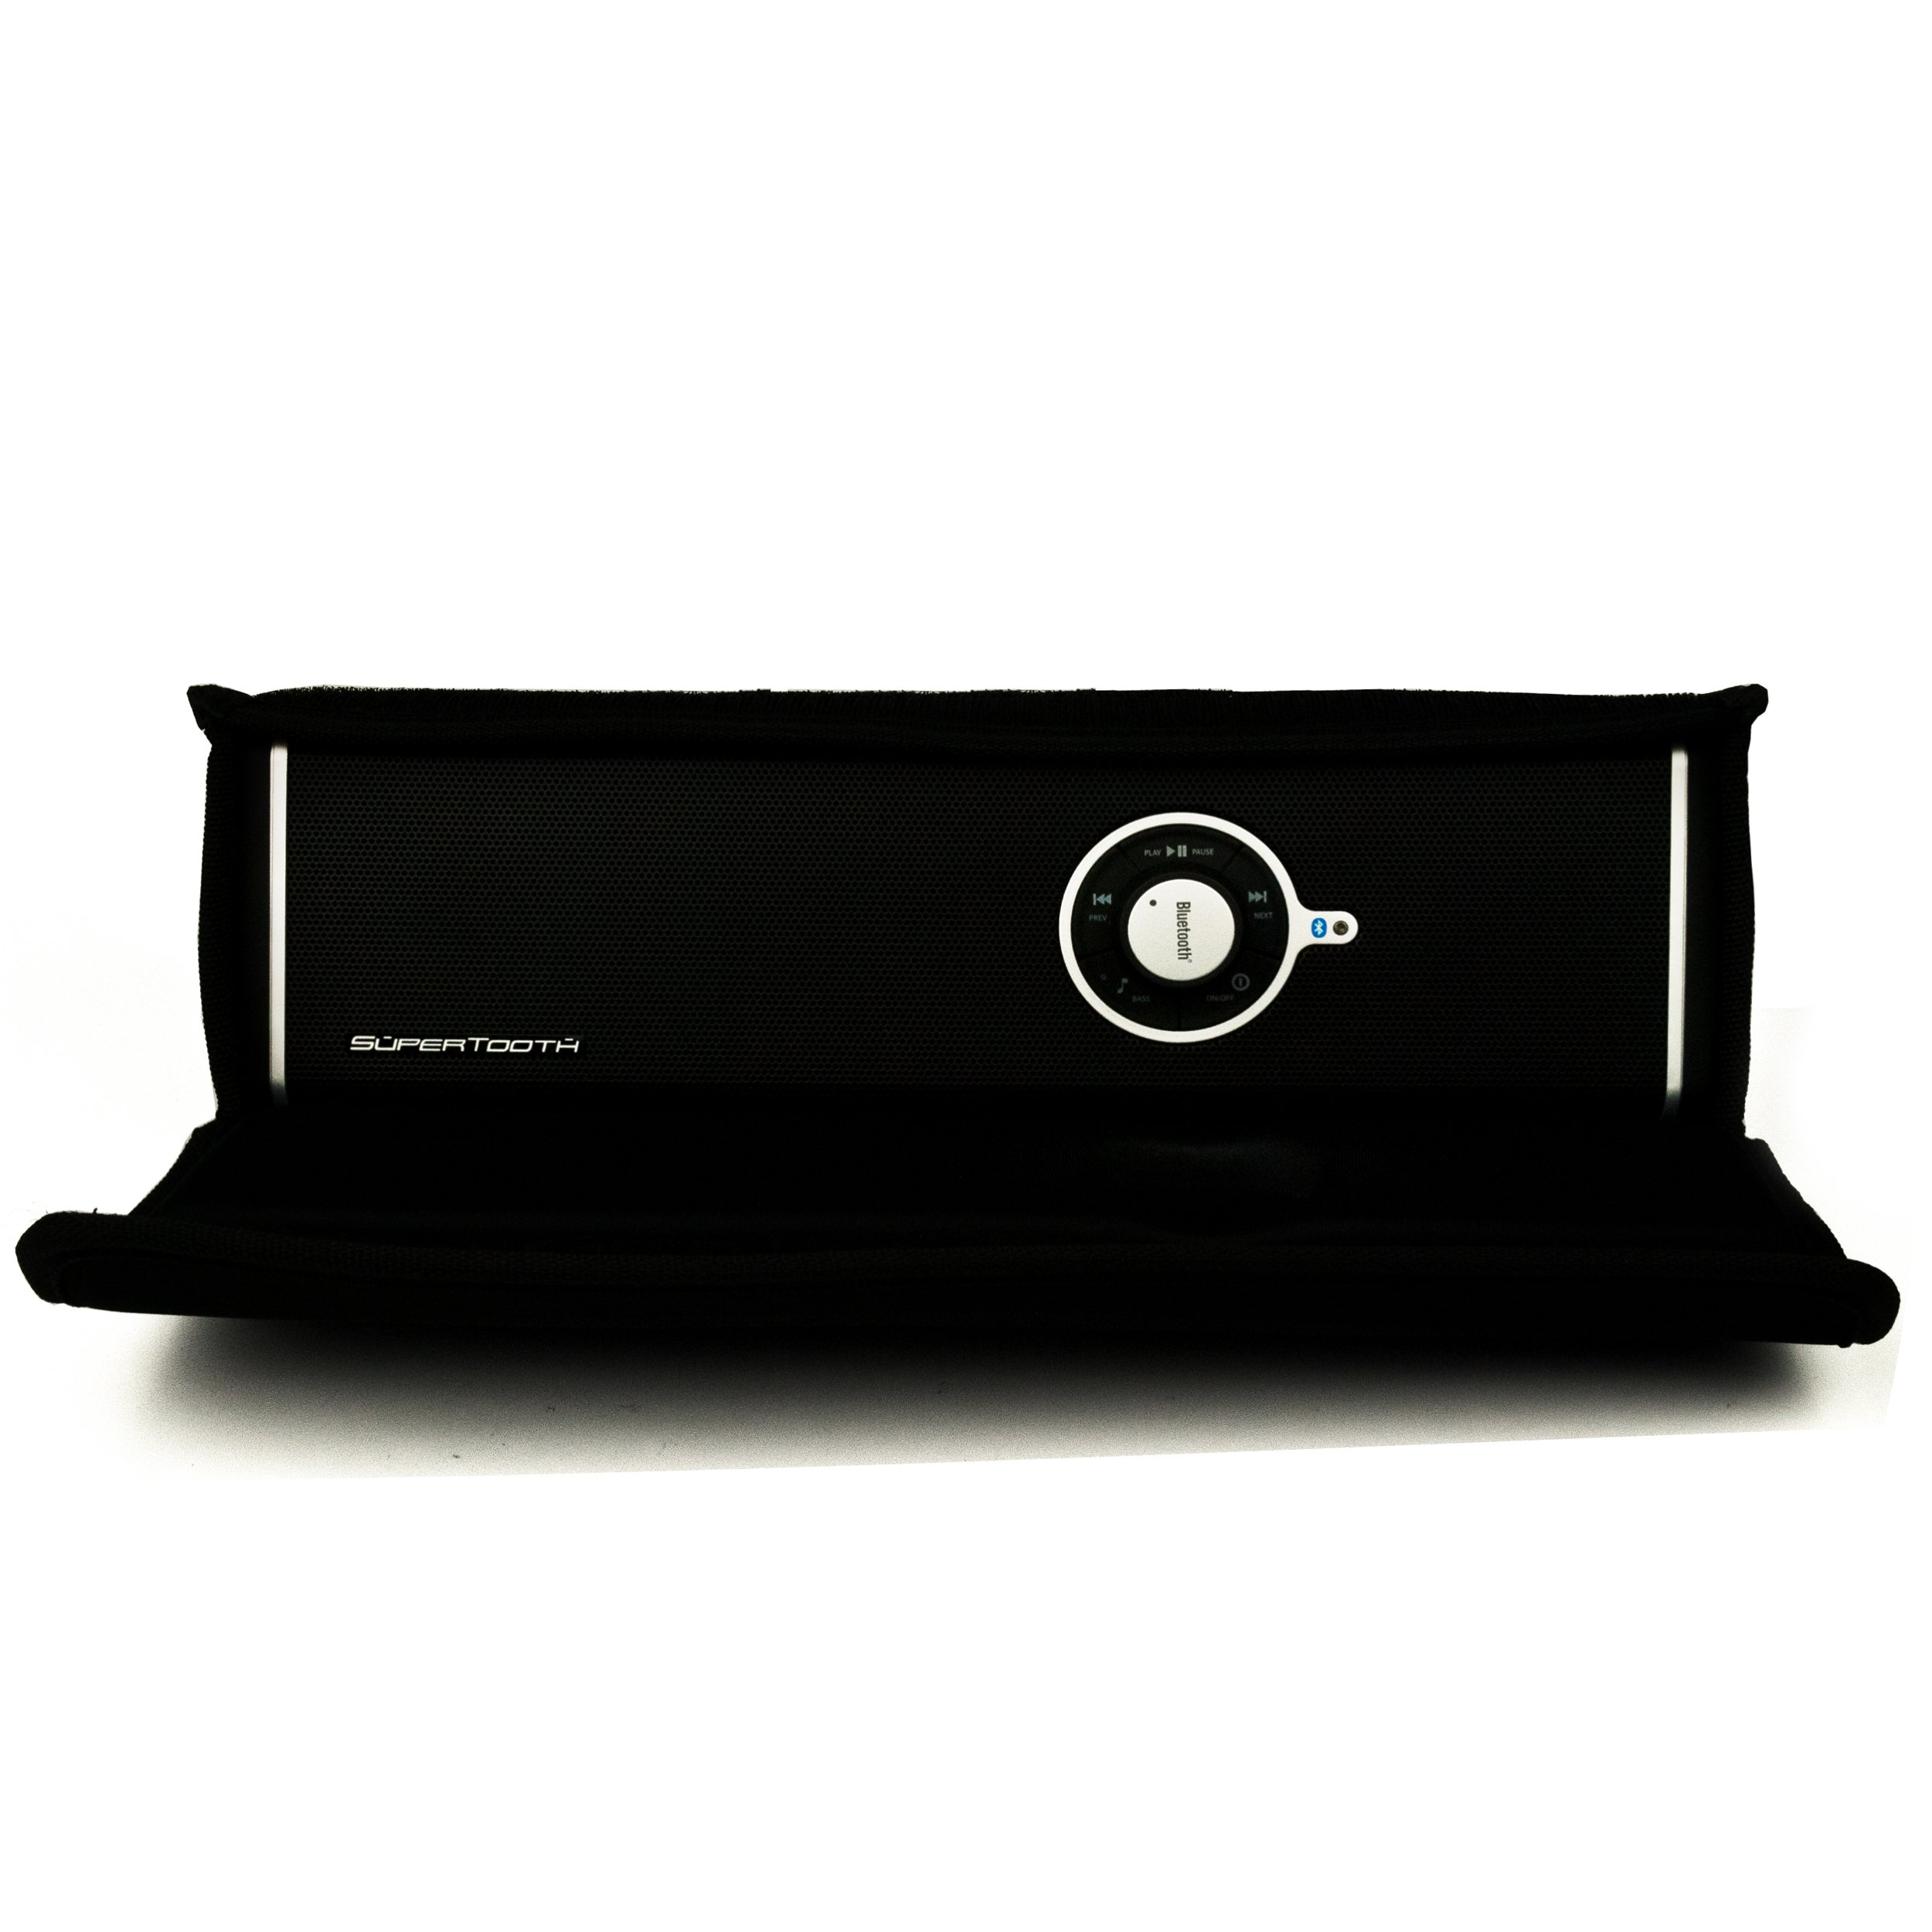 Bluetooth Speaker with Subwoofer For Samsung Galaxy Tab 7.7 (Verizon) SCH-I815 Android Tablet + Includes an eBigValue ™ Determination Hand Strap